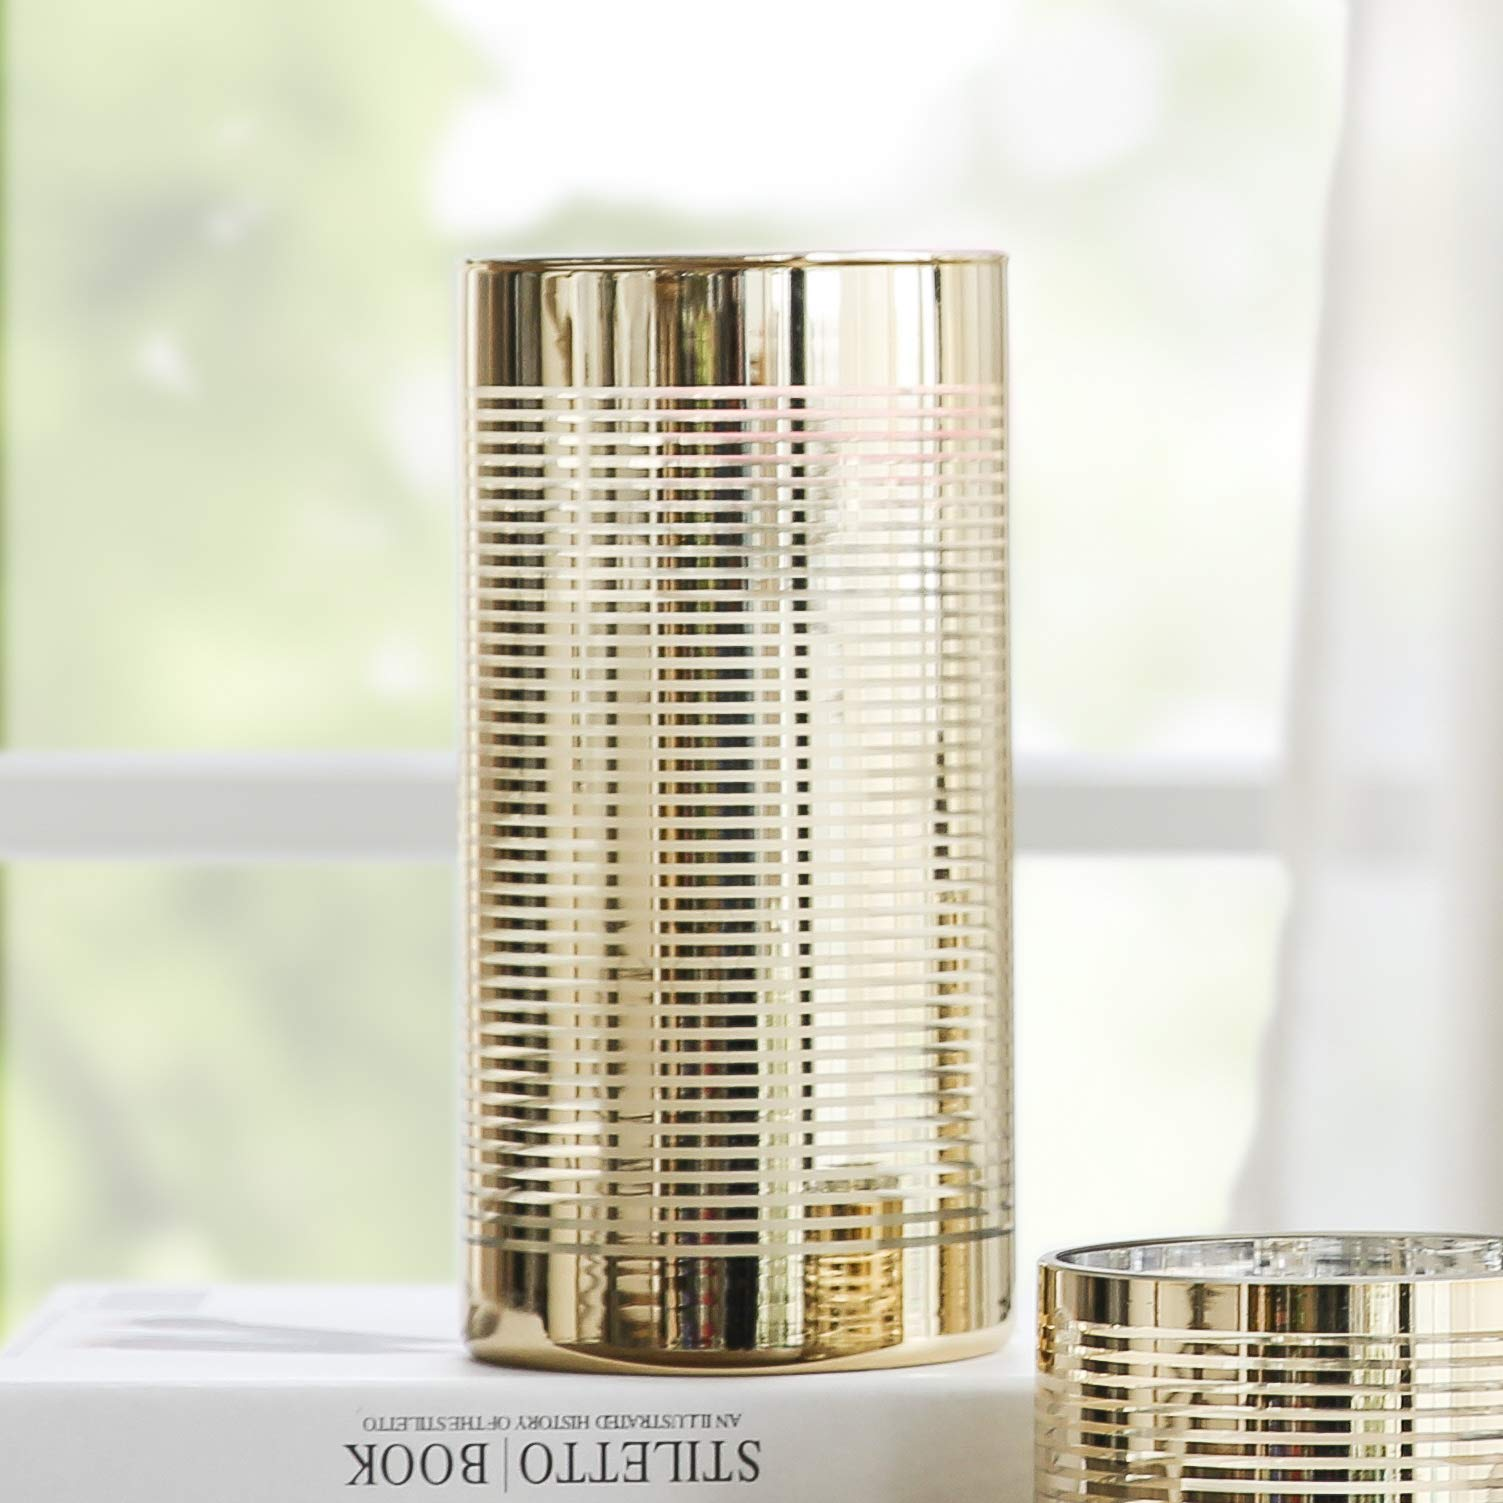 Cyl Home Hurricane Candleholders Clear Glass with Unique Golden Striped Decor Dining Table Centerpieces Cylinder Vases Gifts for Wedding Housewarming Christmas Party,7.9'' Height.